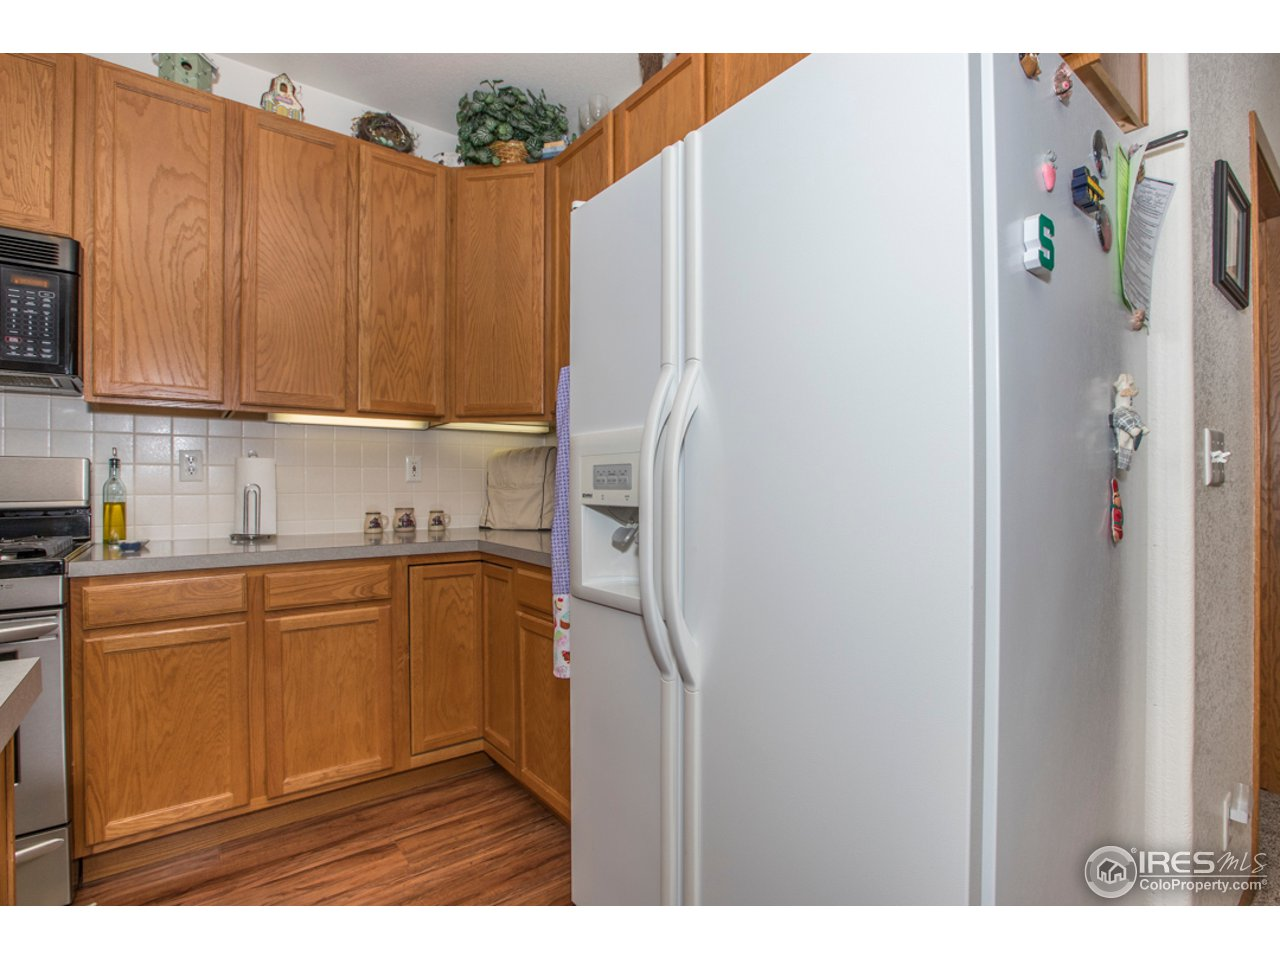 The refrigerator is included